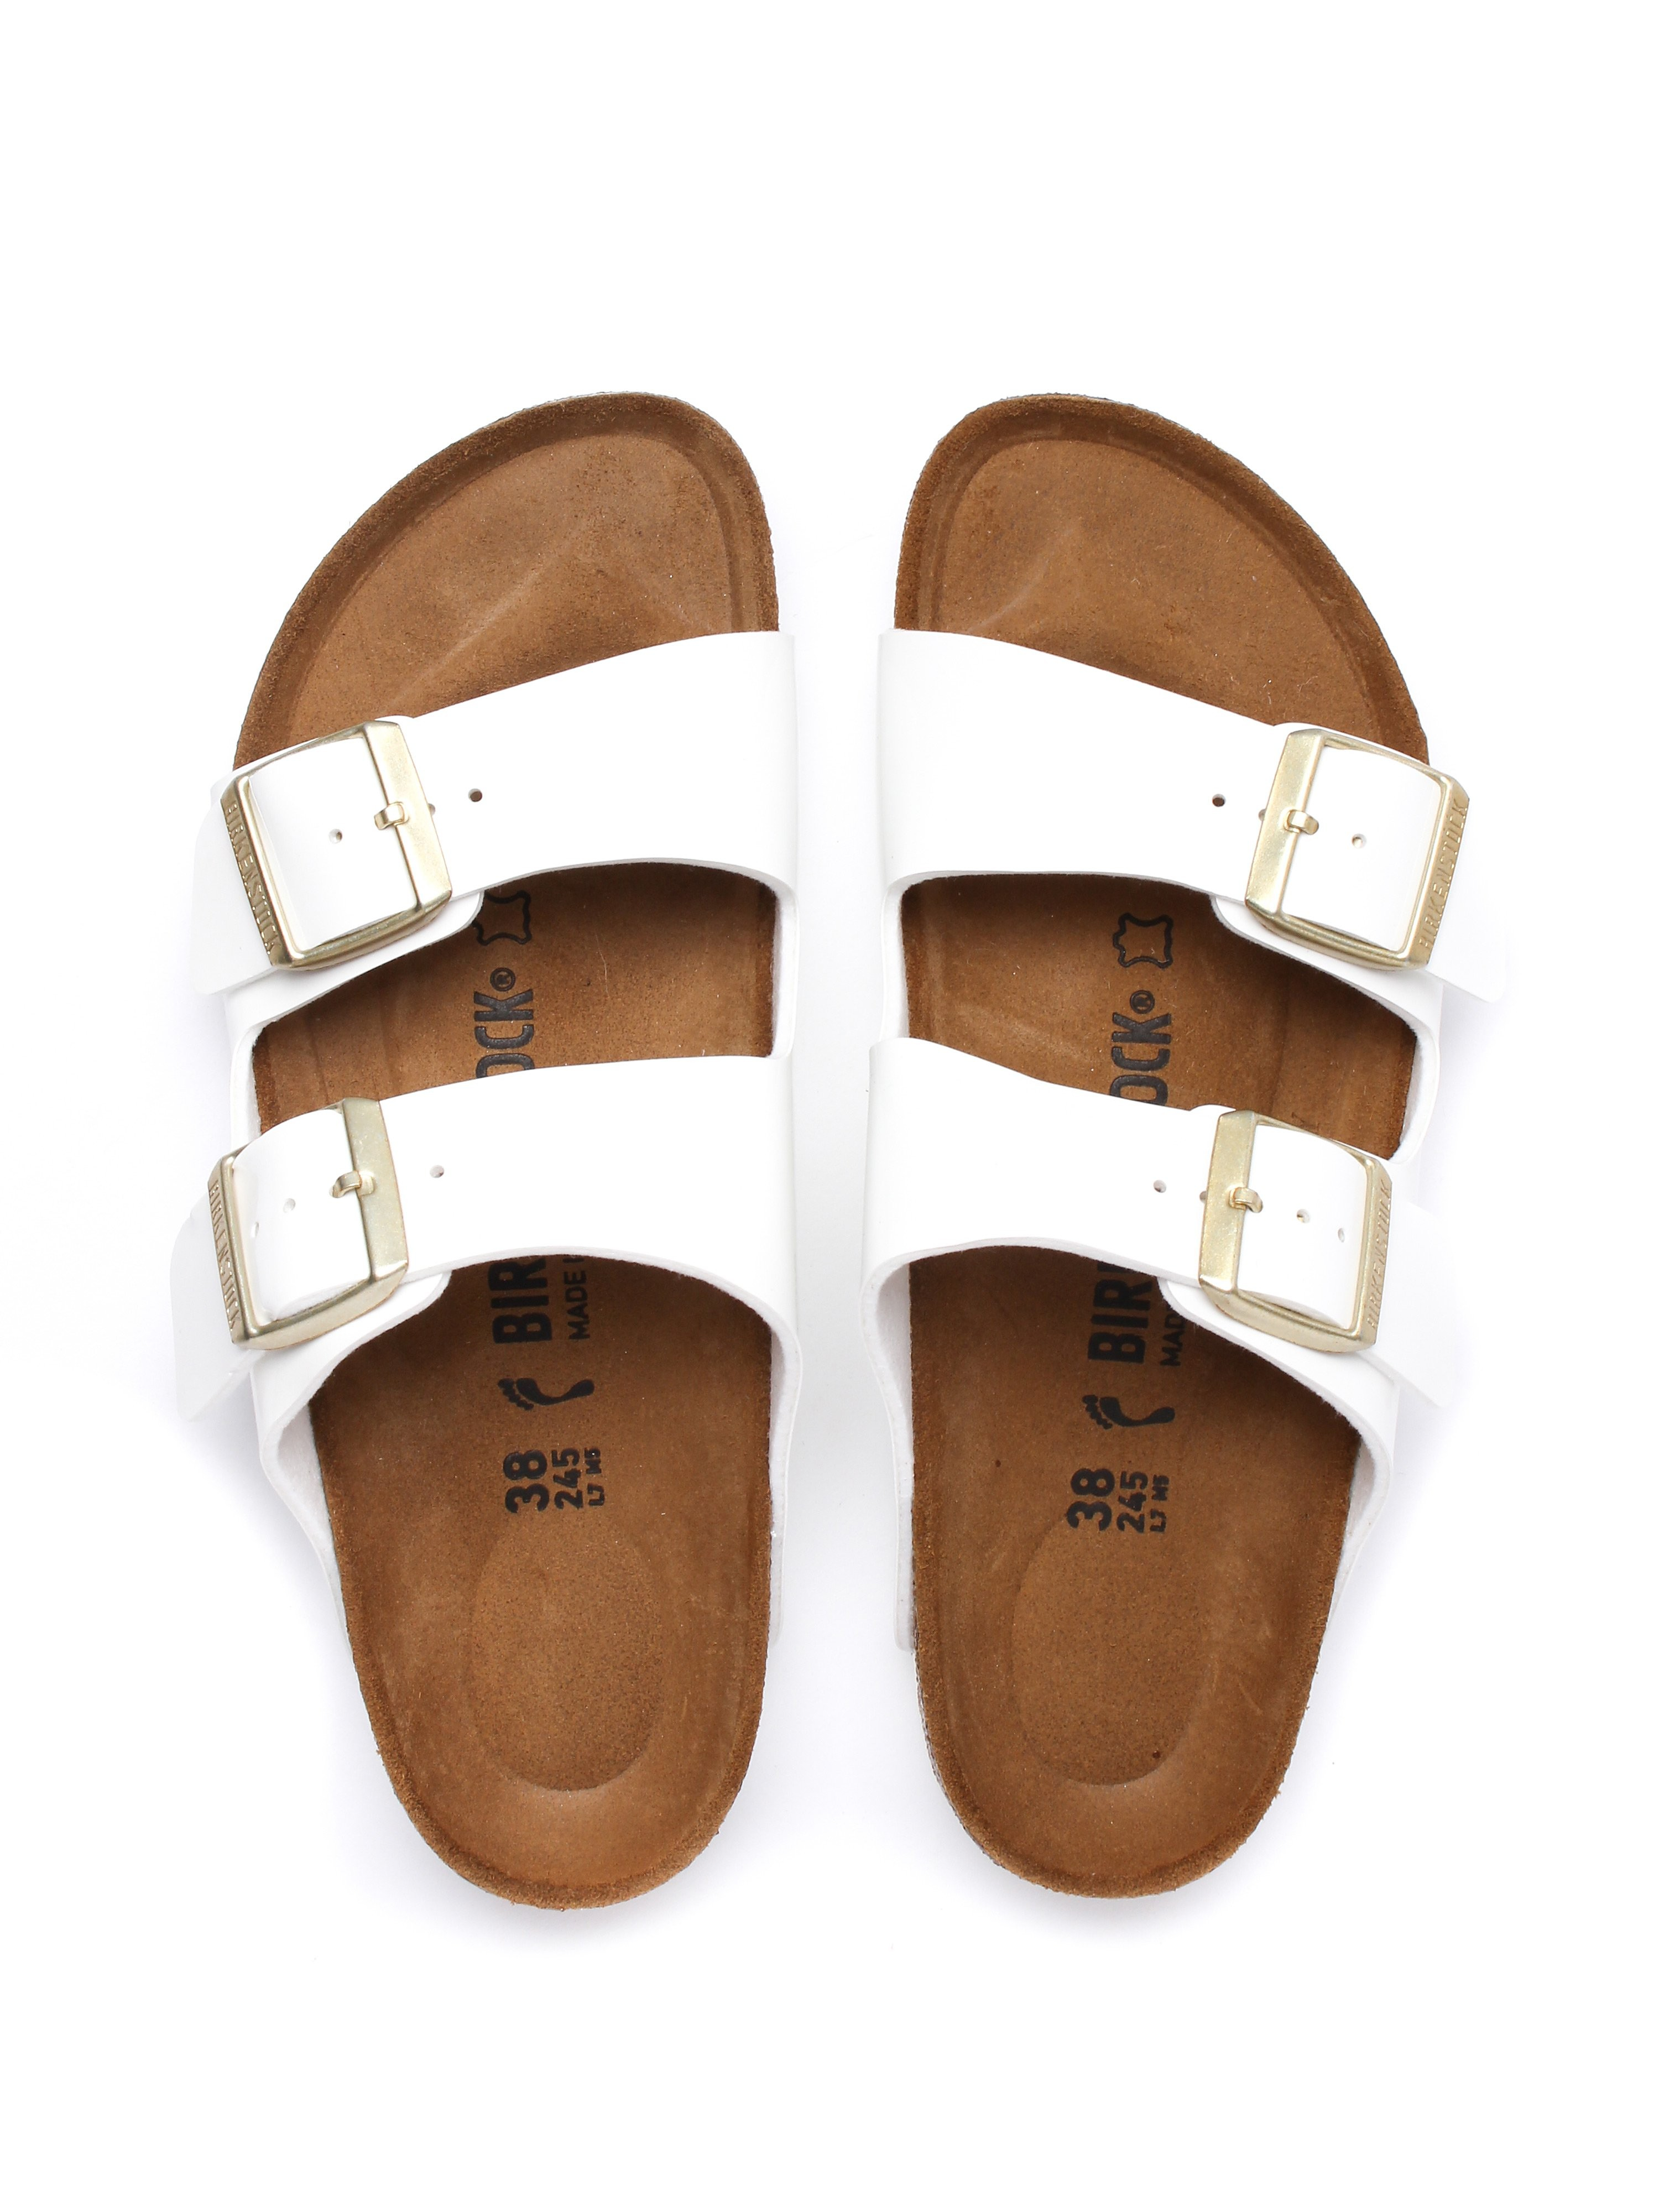 Birkenstock Women's Arizona Narrow Fit Sandals - White Patent